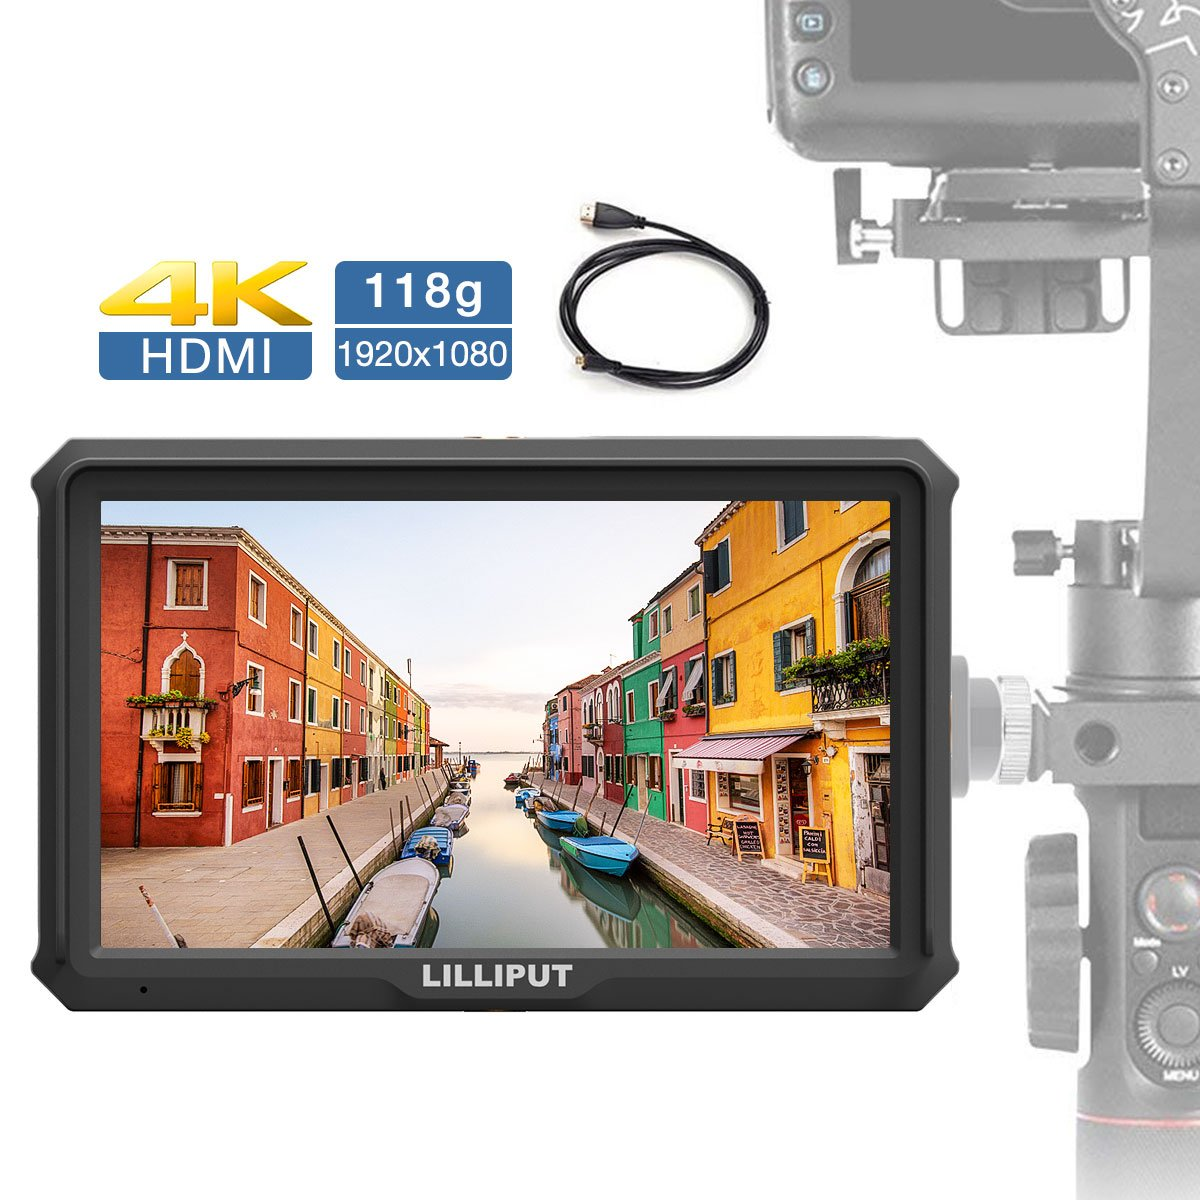 Lilliput A5, 5 inch on Camera Field Monitor Gimbal/Stabilizer Monitor 118g 1920x1080 IPS Camera-top Screen Supports 4K HDMI Input Output for Mirrorless Camera Sony A7S II Panasonic GH5 Canon 5D